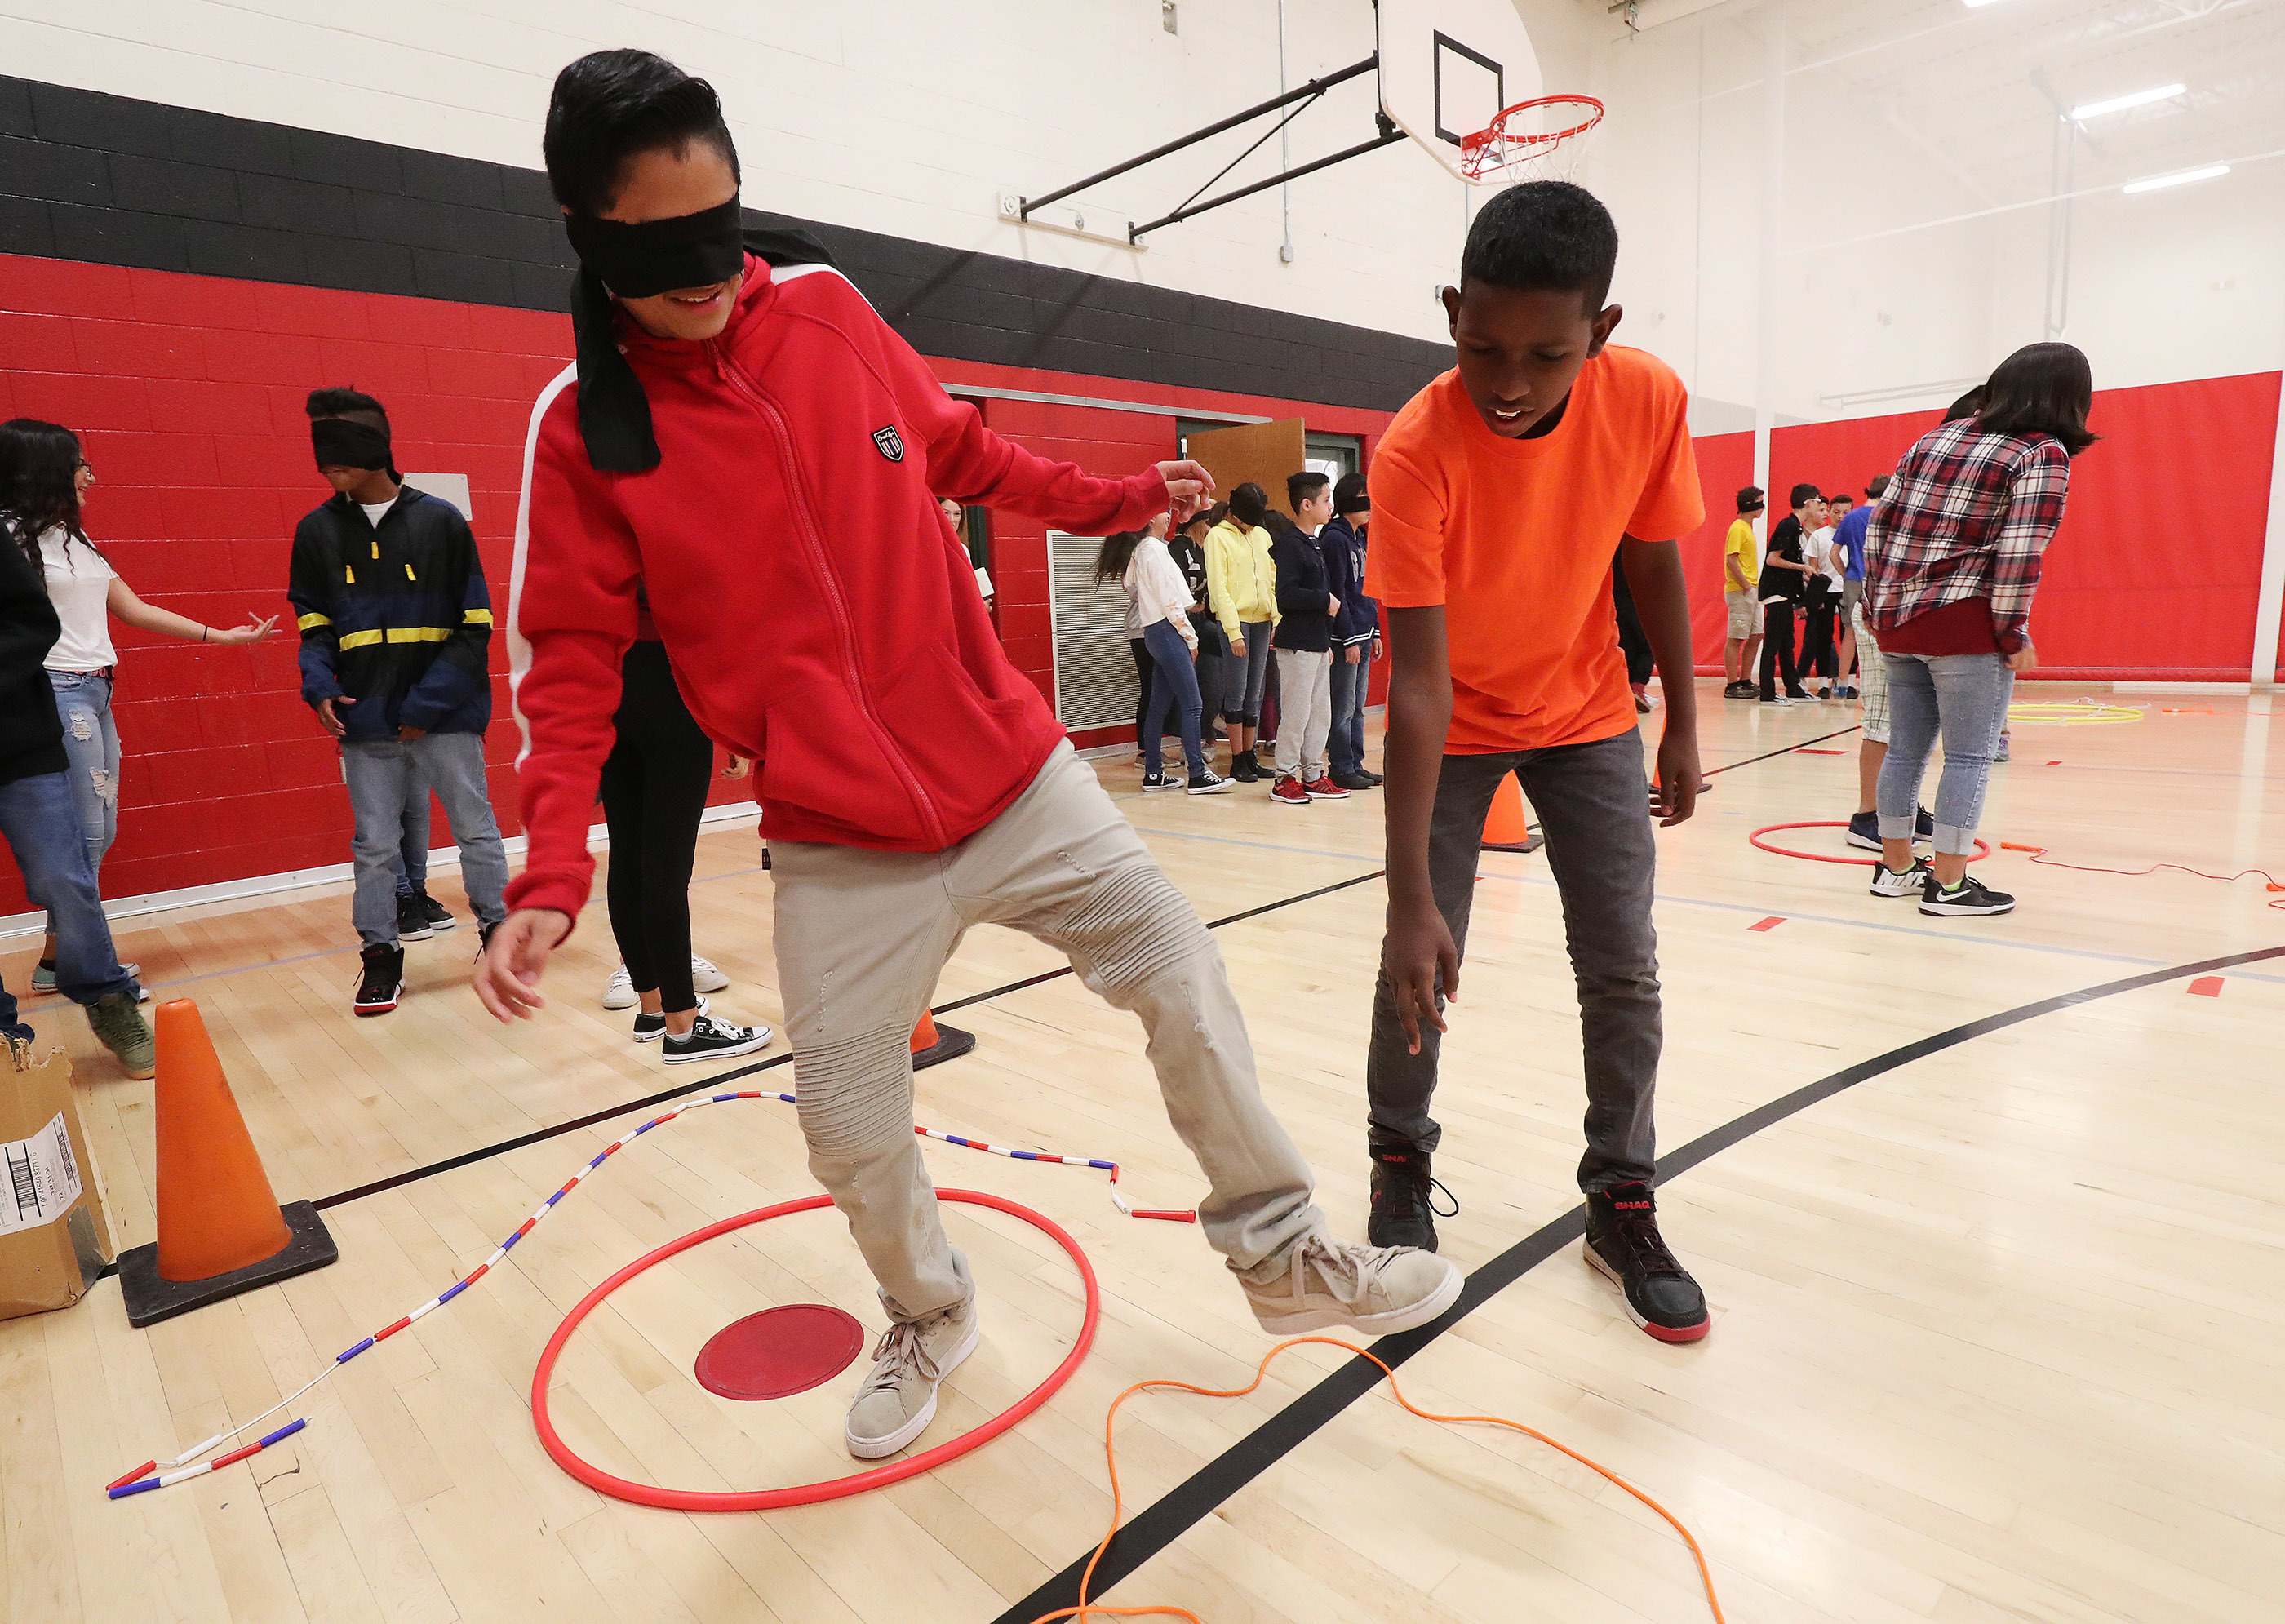 """Bryant Middle School students Andres Hurtado and Arefa Salih participate in a team-building exercise in Salt Lake City on Wednesday, Sept. 19, 2018. """"(My partner) learned when I gave him instructions — he has to listen,"""" Hurtado said.  The social-emotiona"""